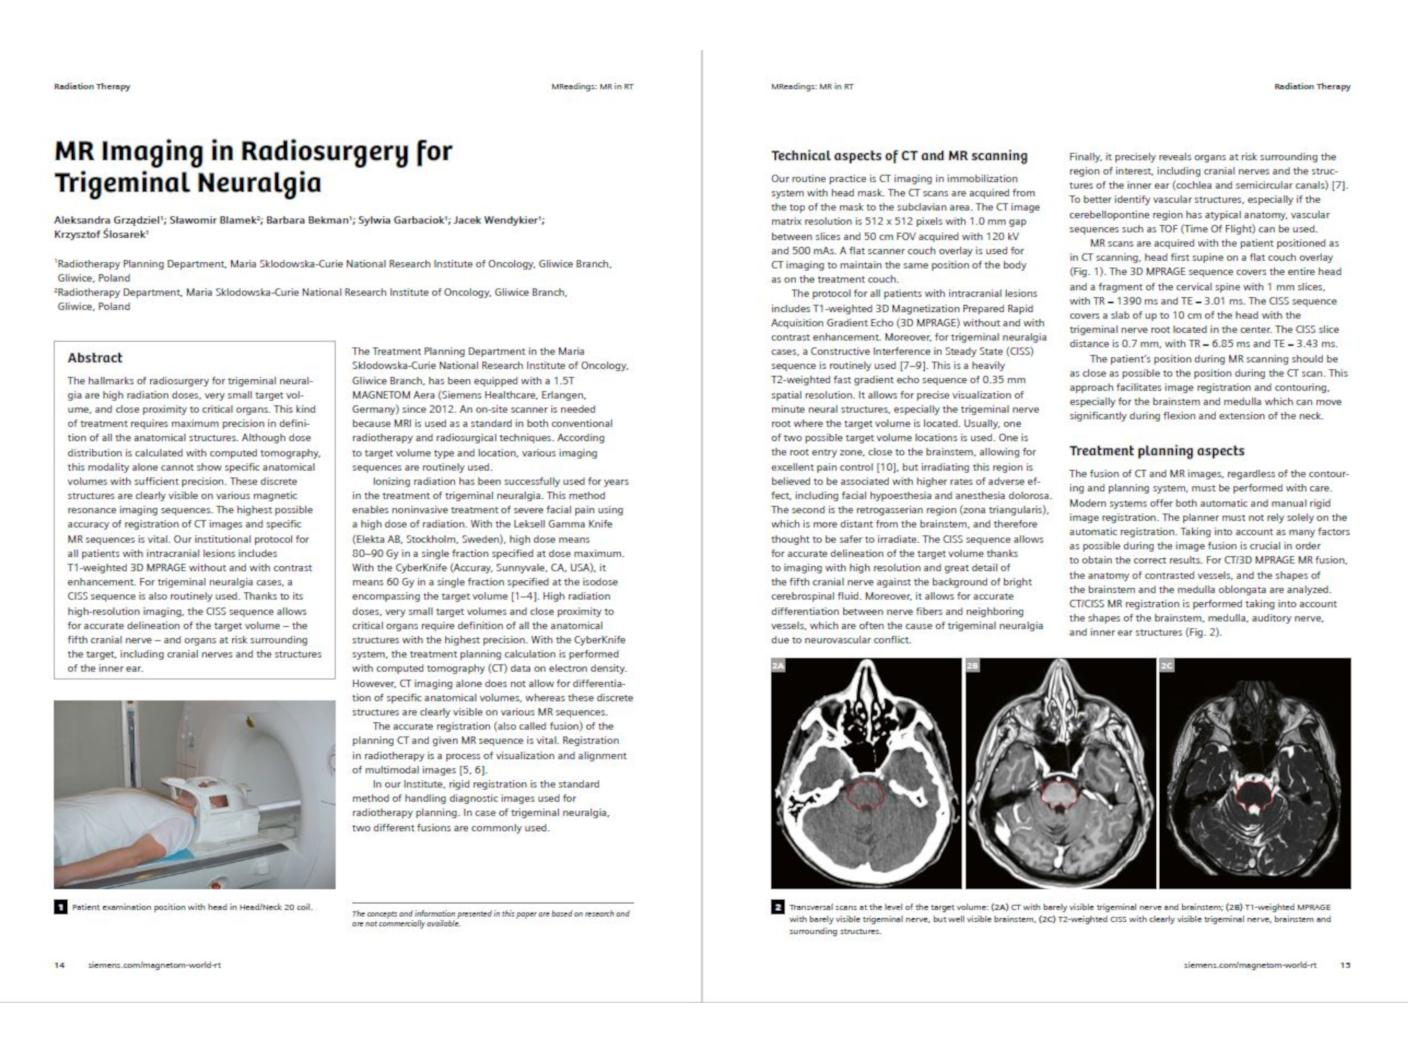 MR Imaging in Radiosurgery for Trigeminal Neuralgia